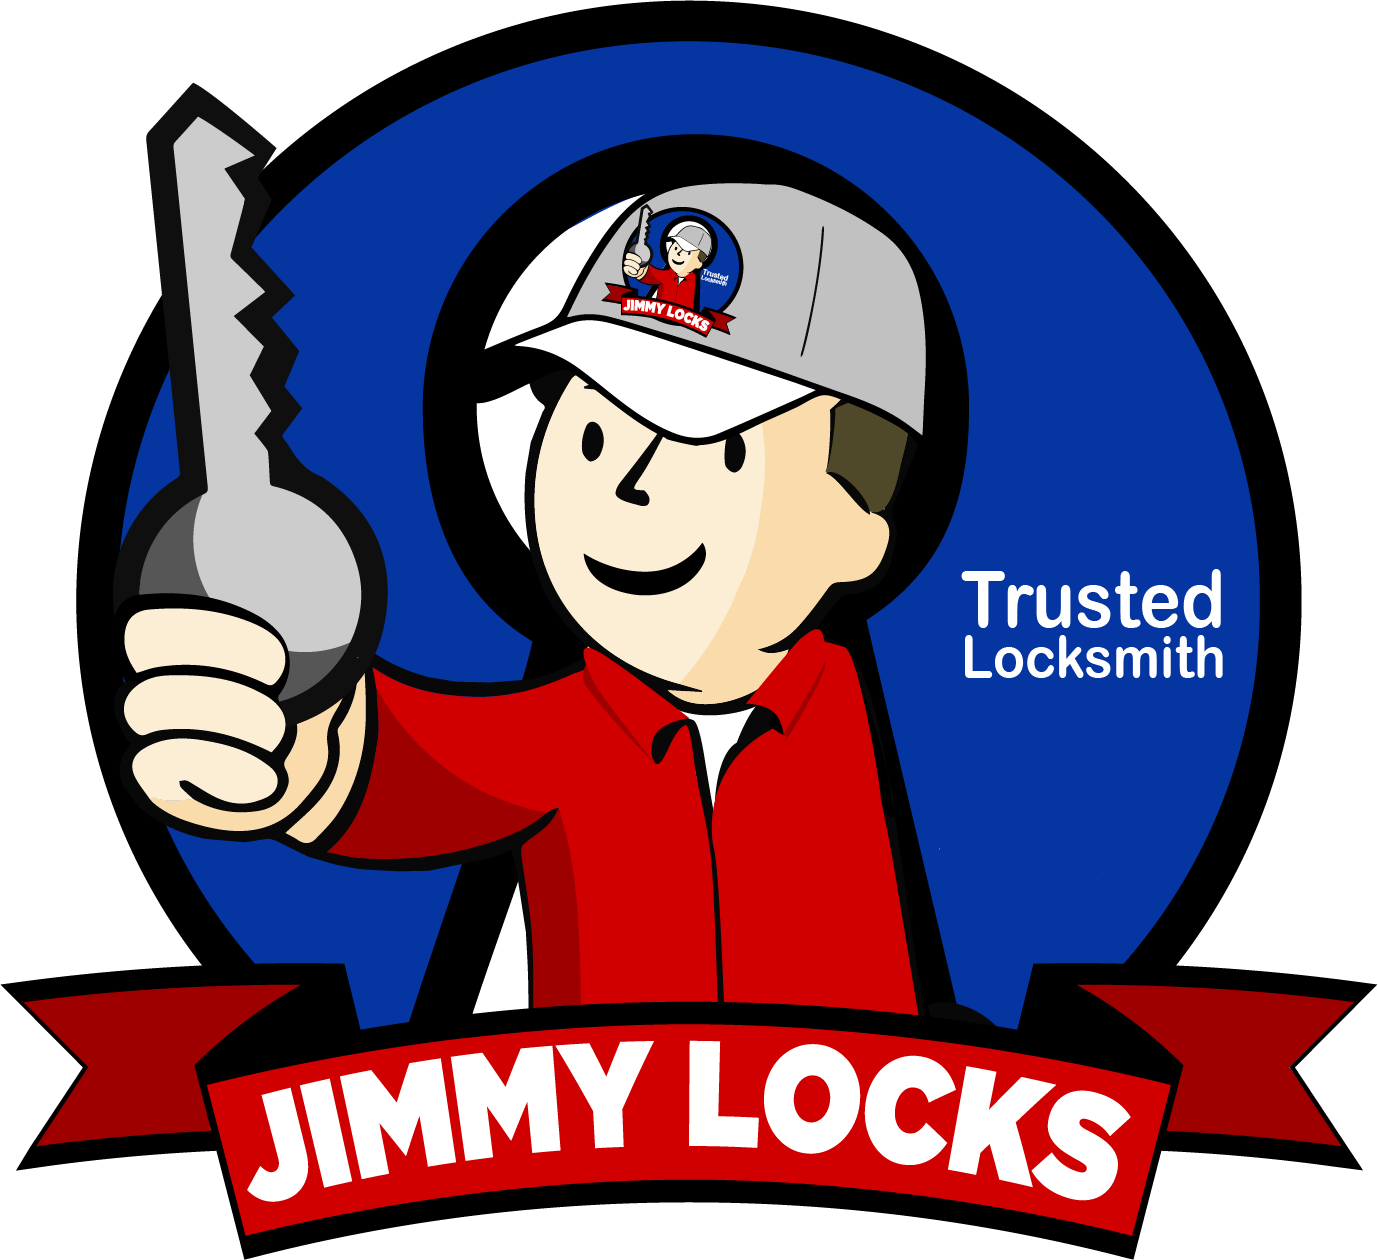 Jimmy Locks